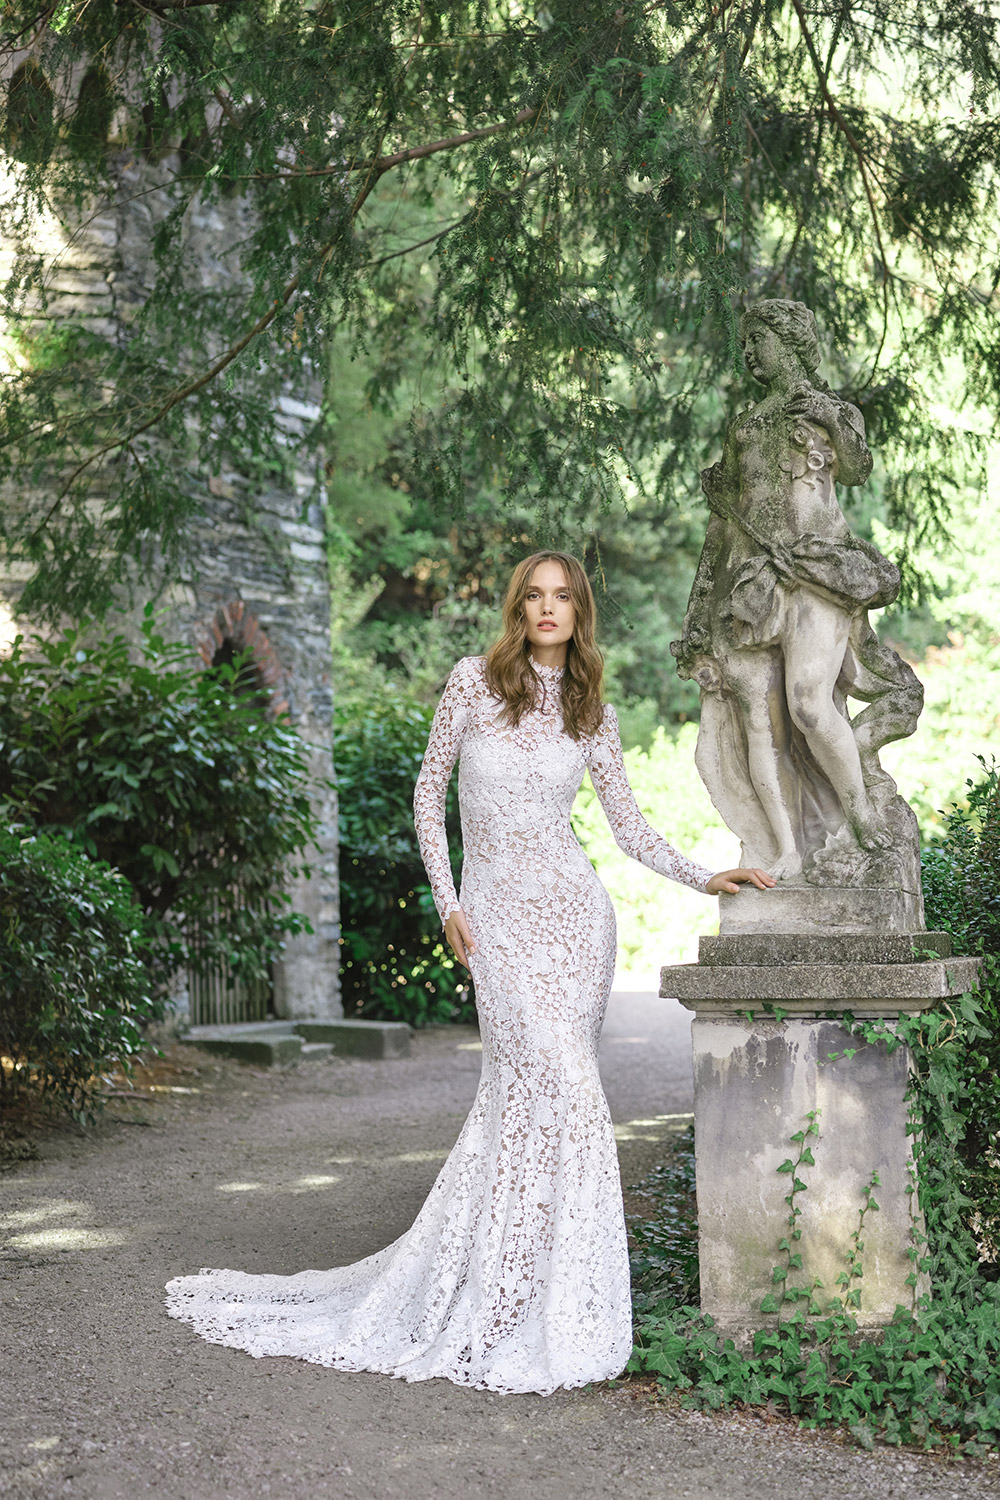 Atherton - Monique Lhuillier Fall 2020 Bridal Collection. www.theweddingnotebook.com